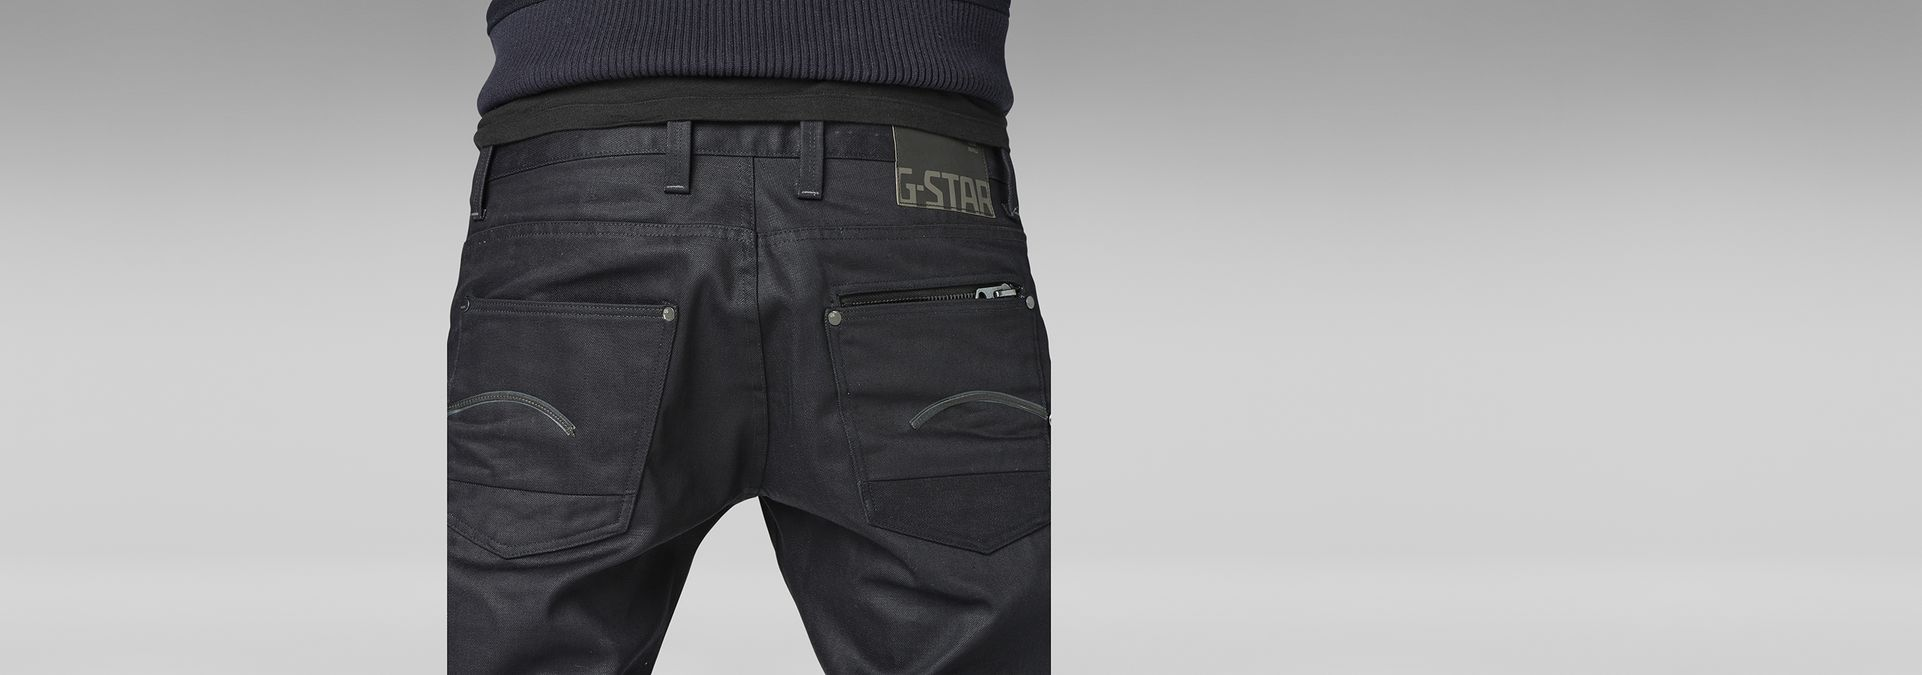 attacc low straight jeans 3d aged men sale g star raw. Black Bedroom Furniture Sets. Home Design Ideas